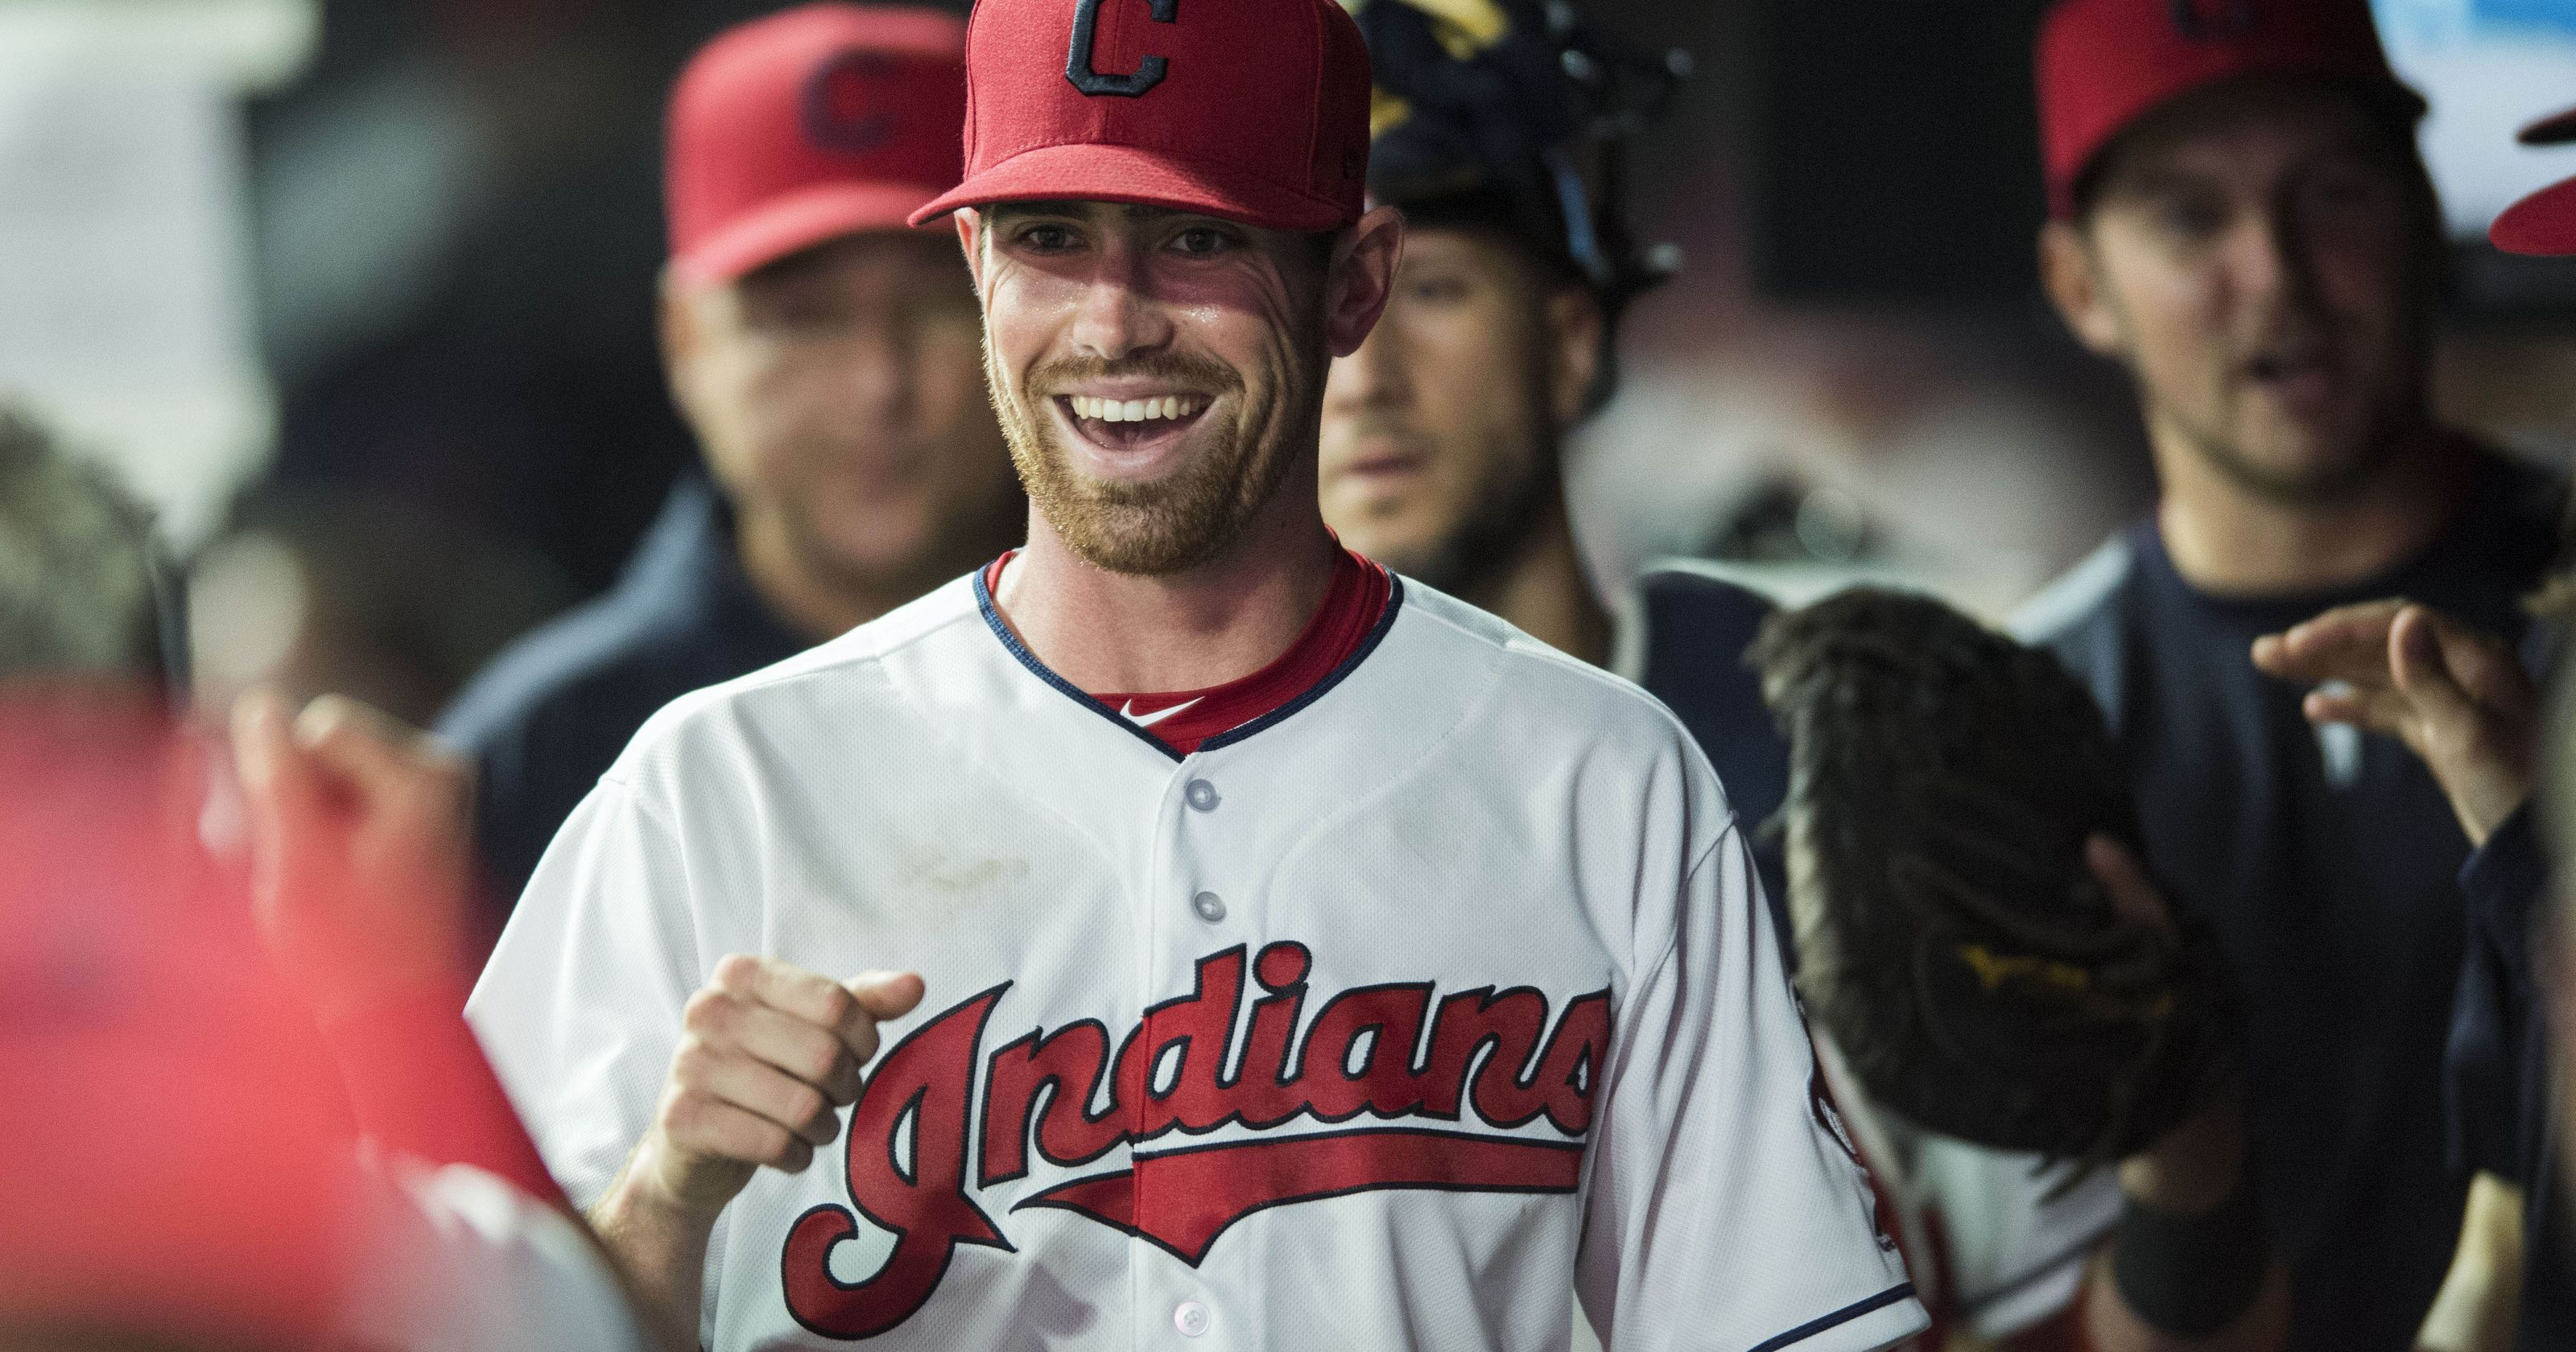 Shane Bieber Looks to Have Breakout Year for the Indians